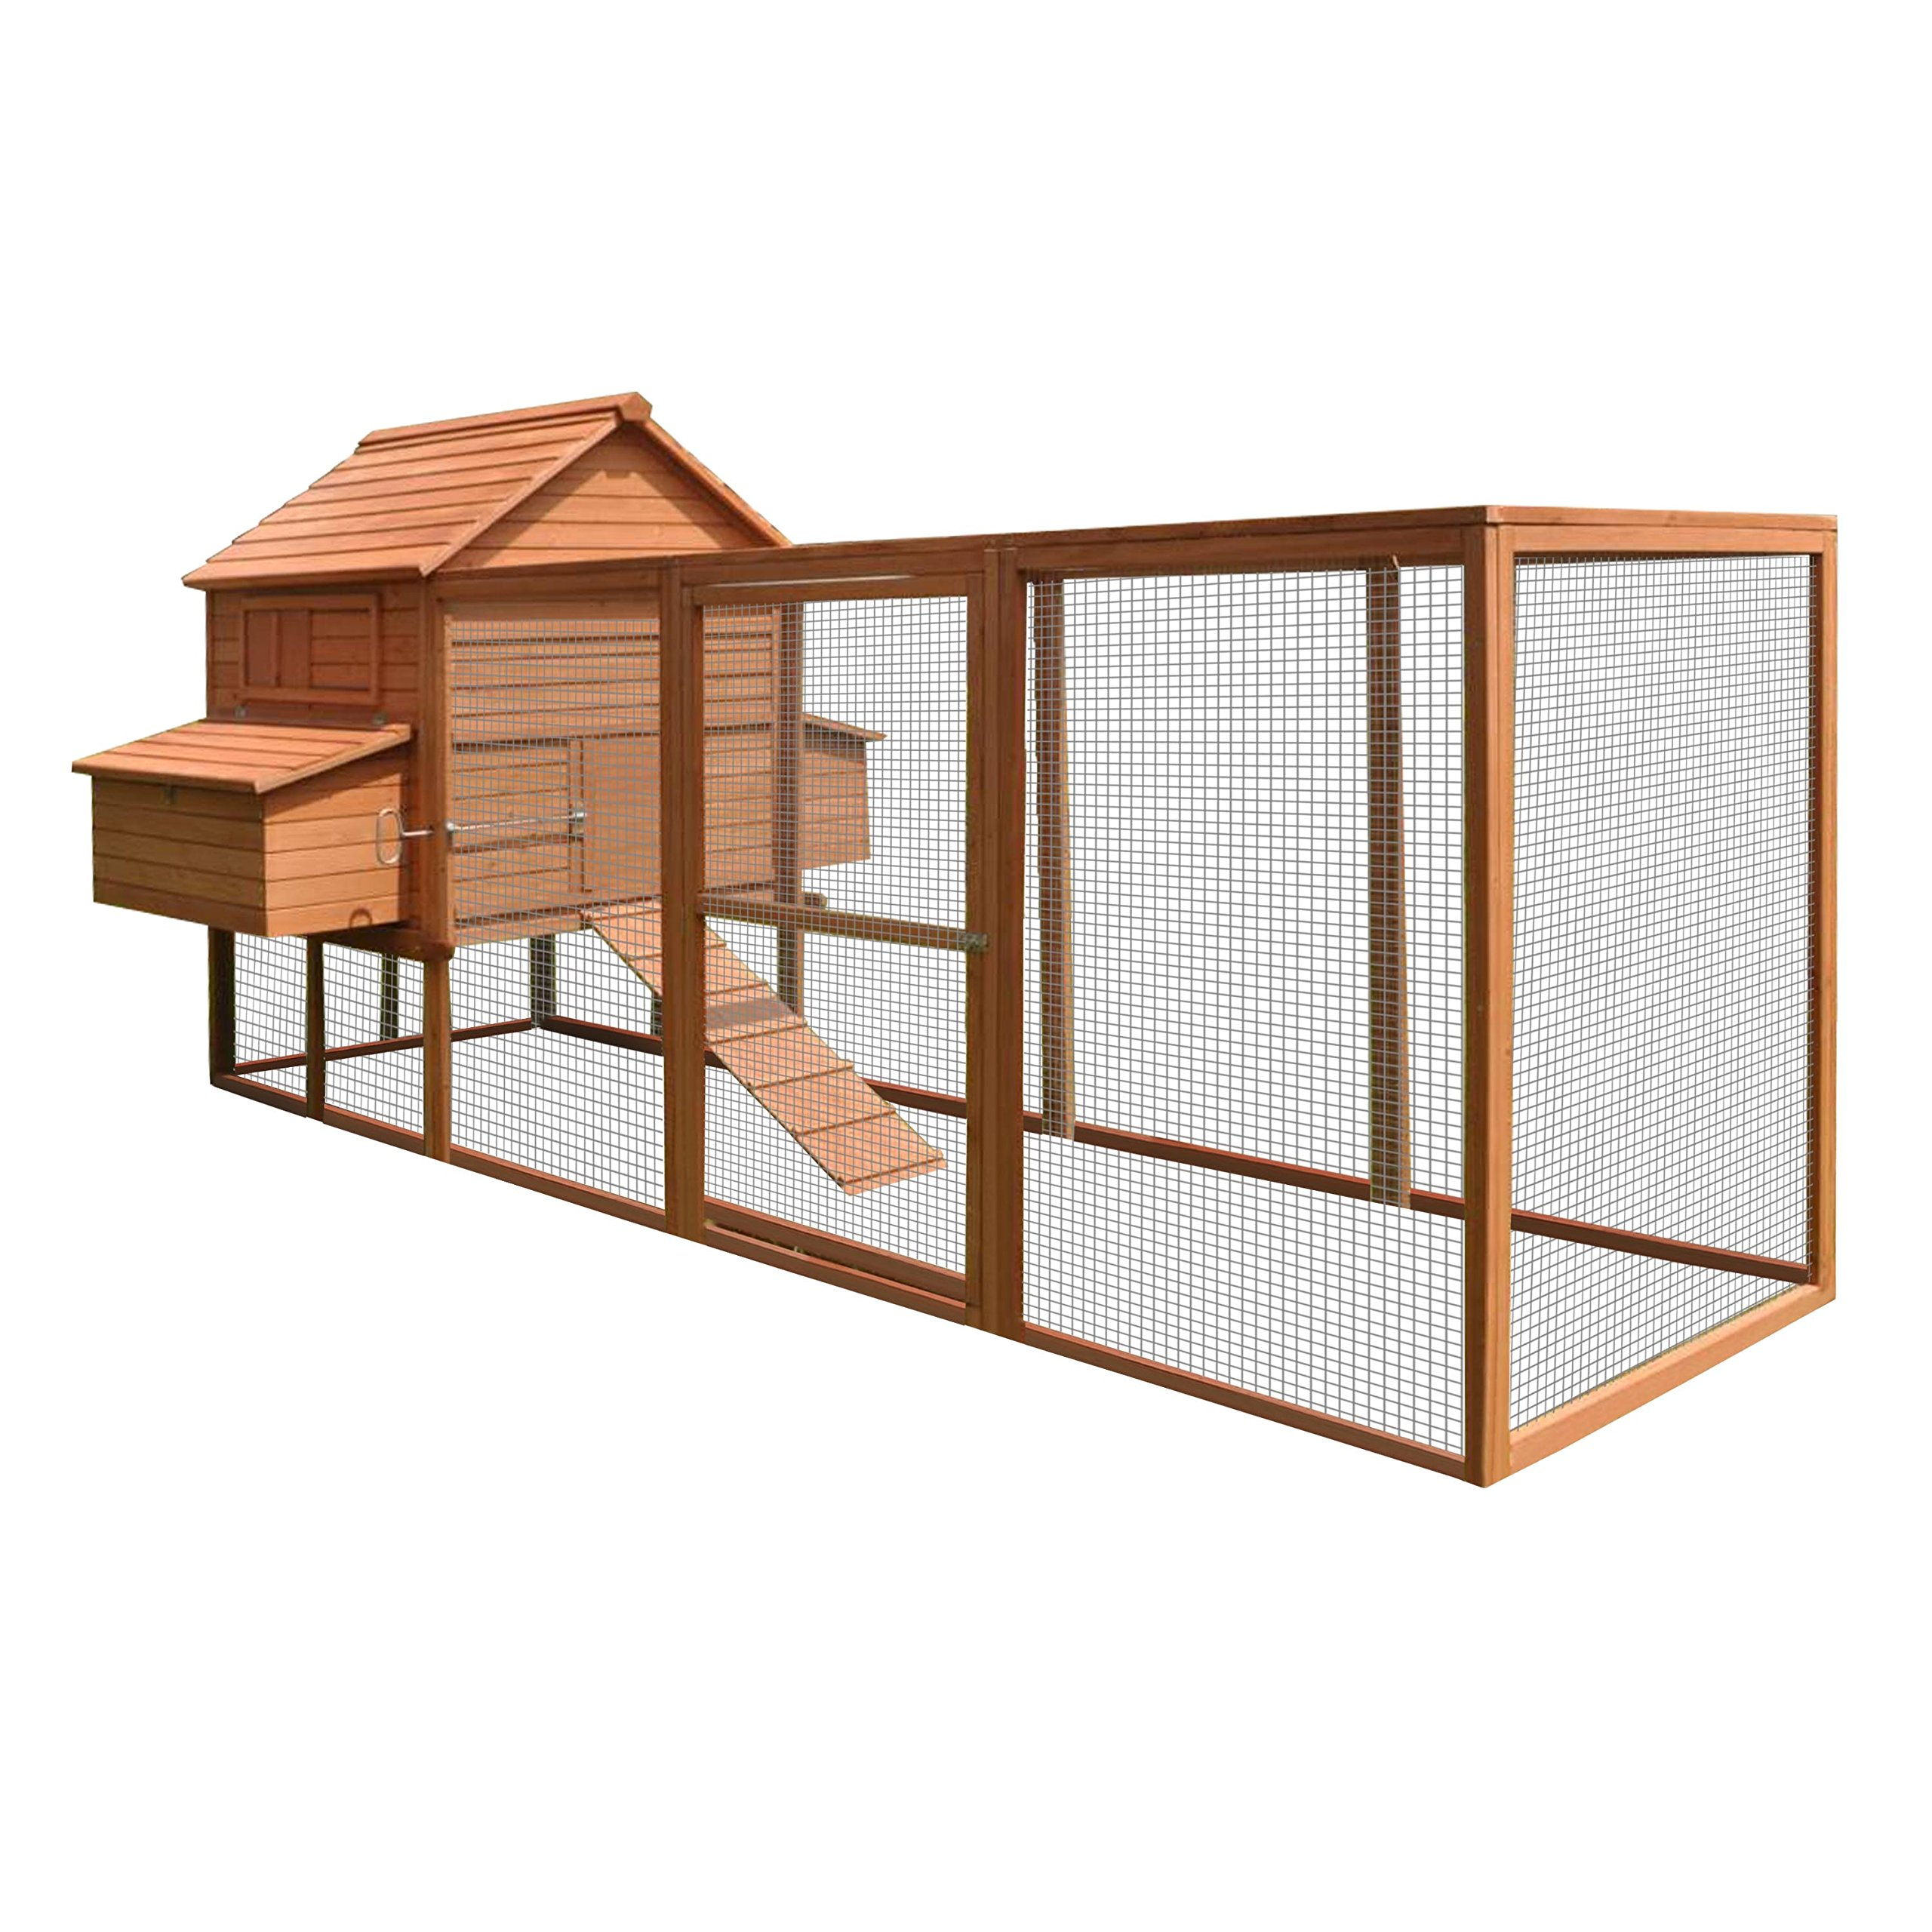 ALEKO DXH1000RD Spacious Wooden Pet House Poultry Hutch, Rabbits Chickens Hen Coop Wooden Cage 143.7 x 68.5 x 66.5 Inches, Red